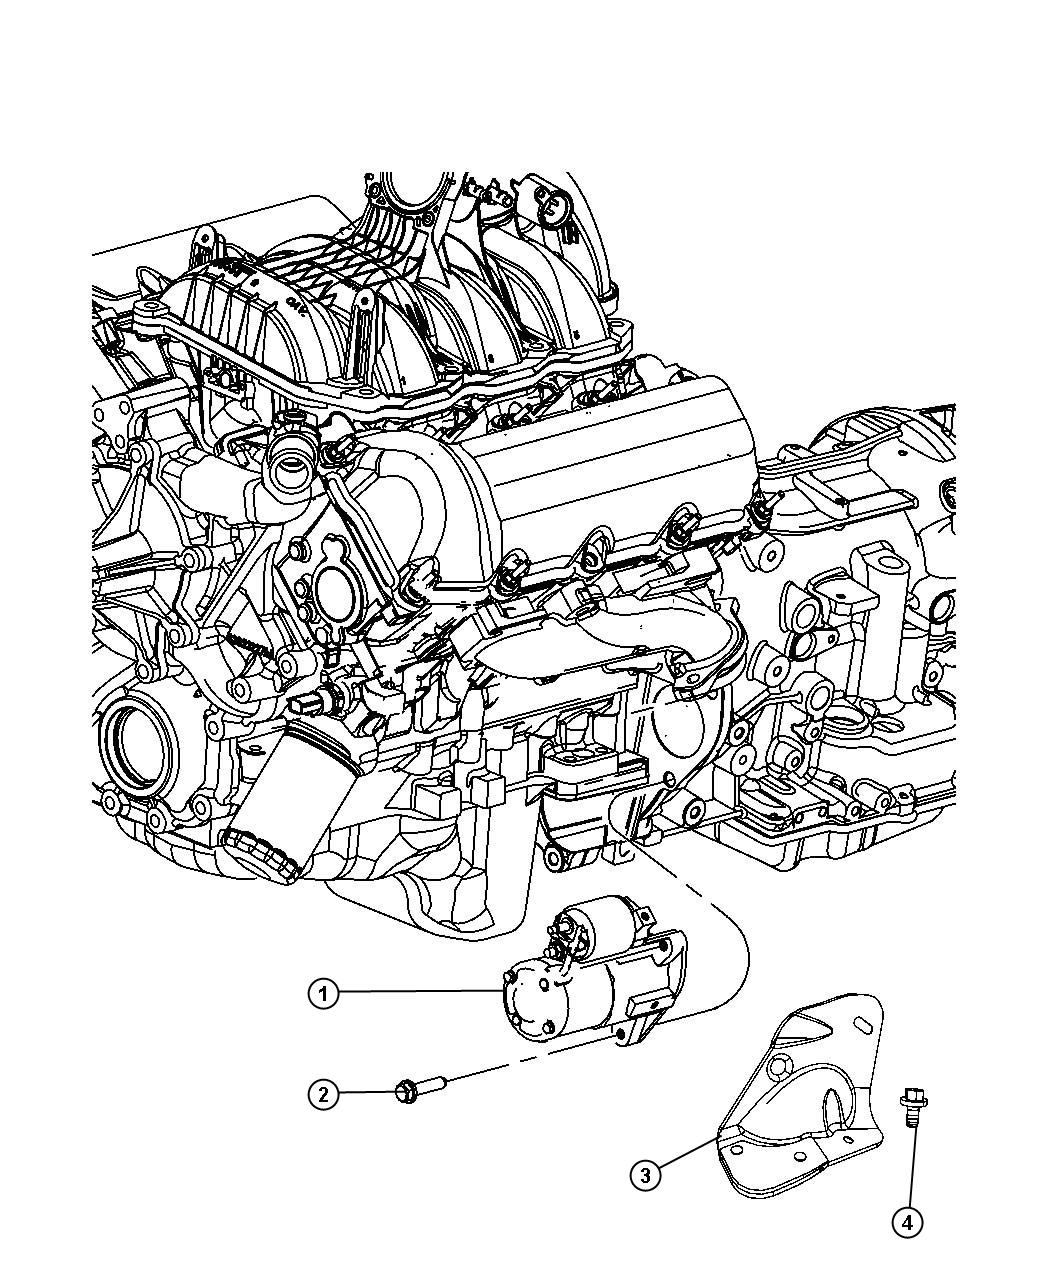 Service manual [2011 Dodge Nitro Ignition Switch Removal